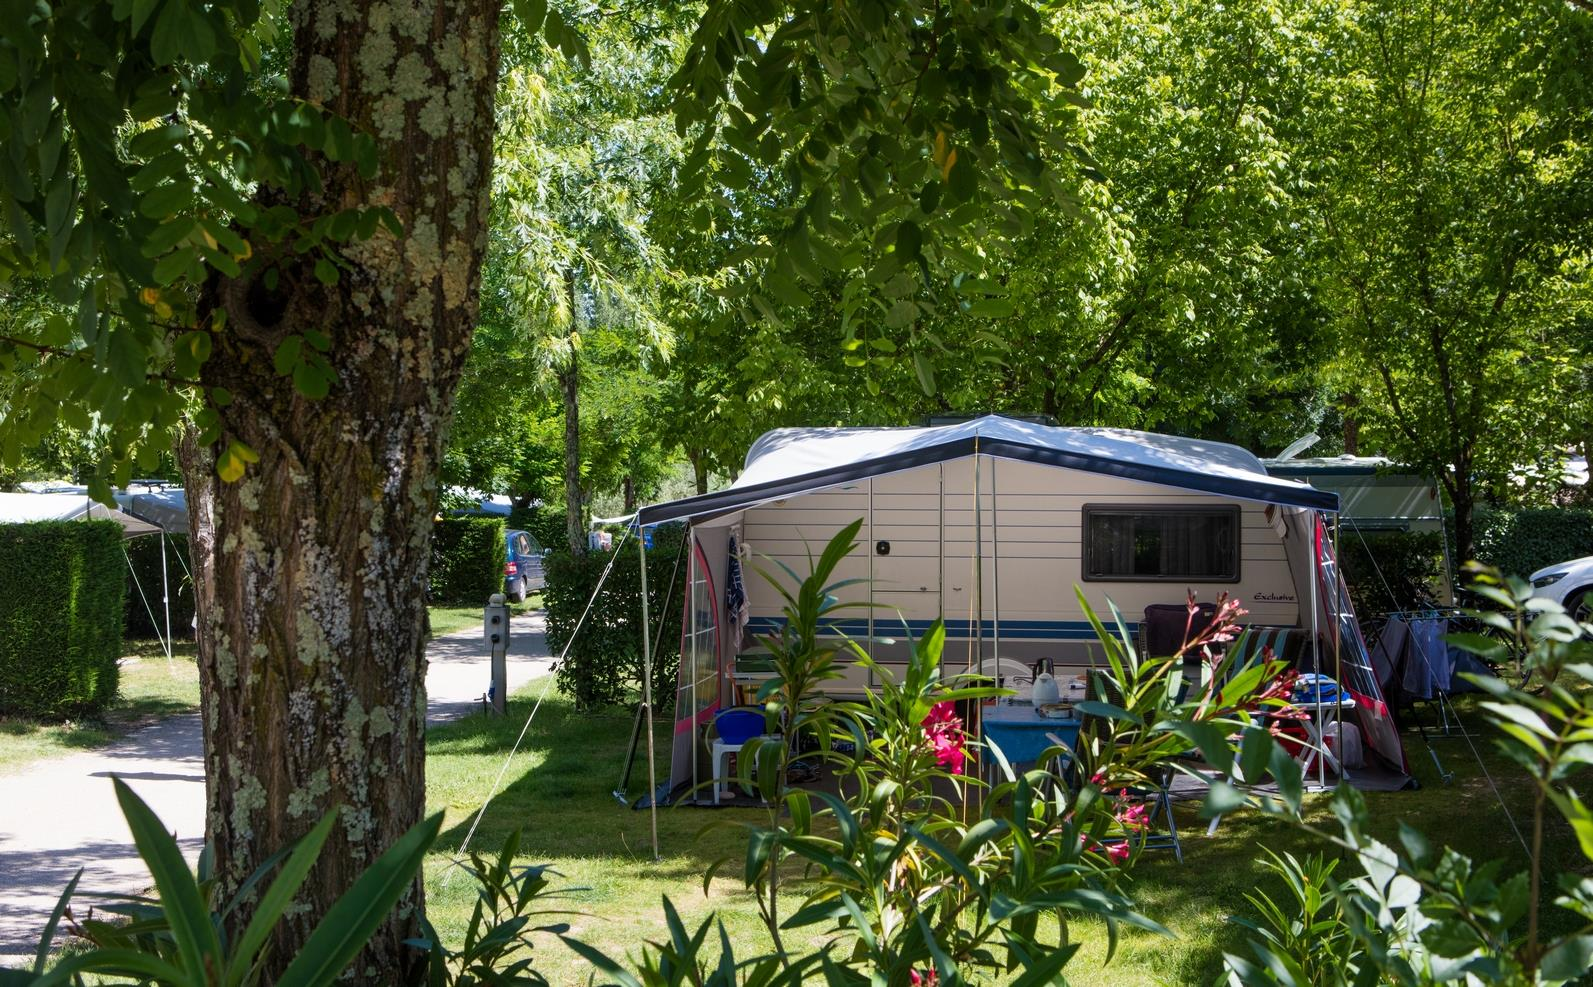 Emplacement - Emplacement - 80M² - Camping Les Coudoulets